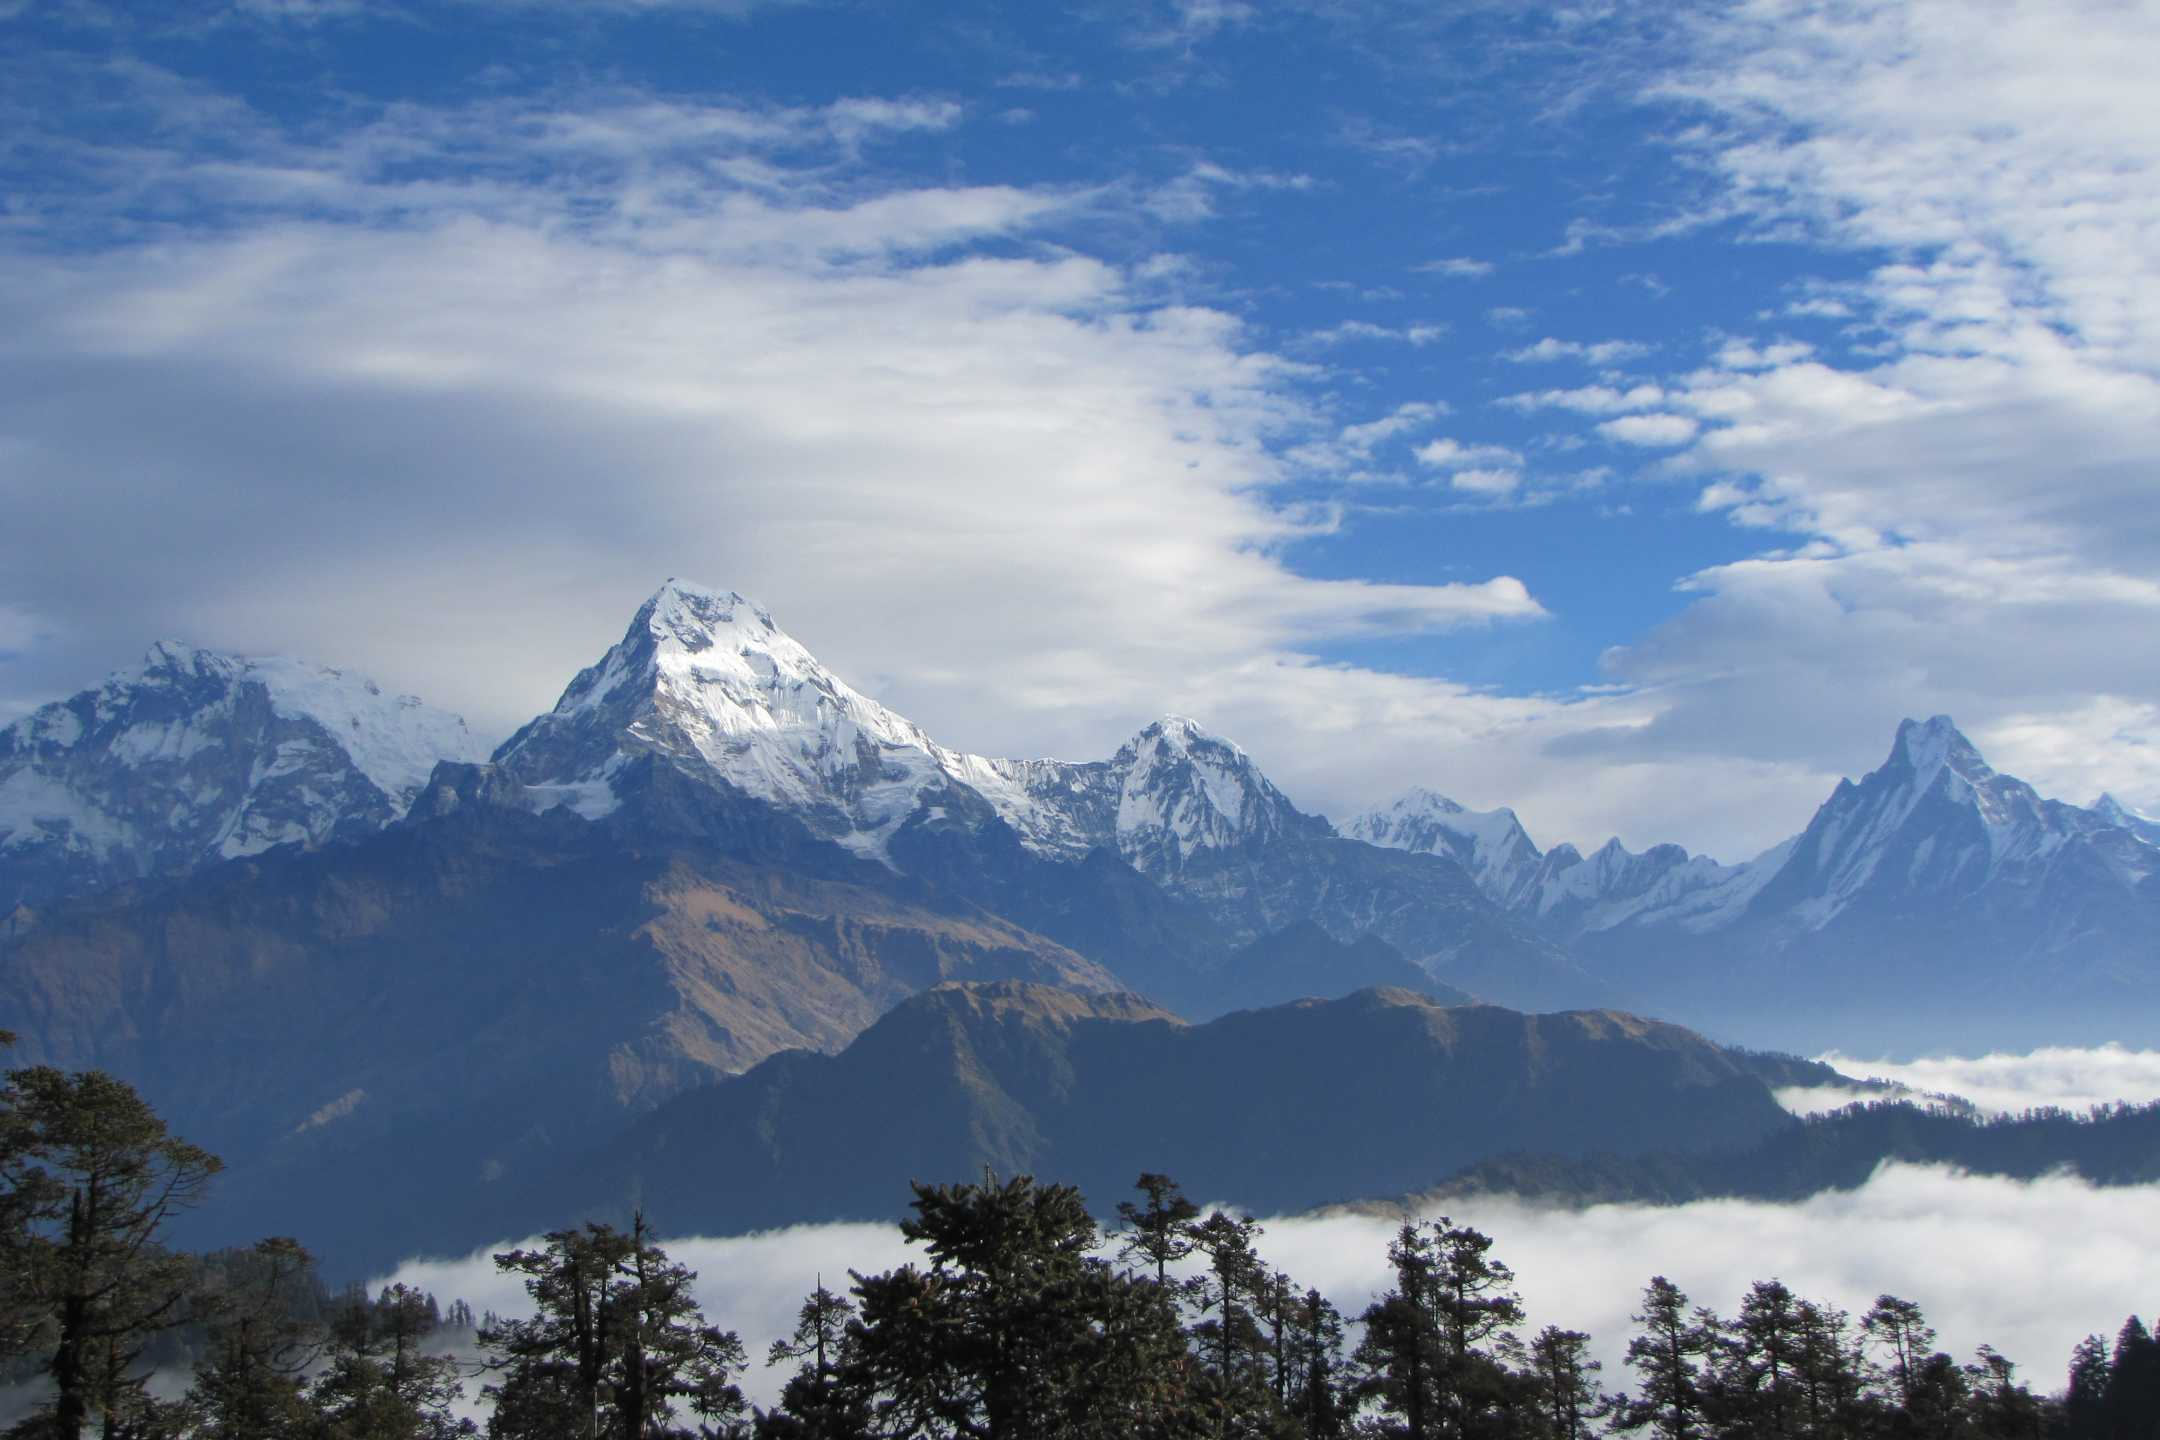 The views of Himalayas, as seen during the Annapurna Community Trek